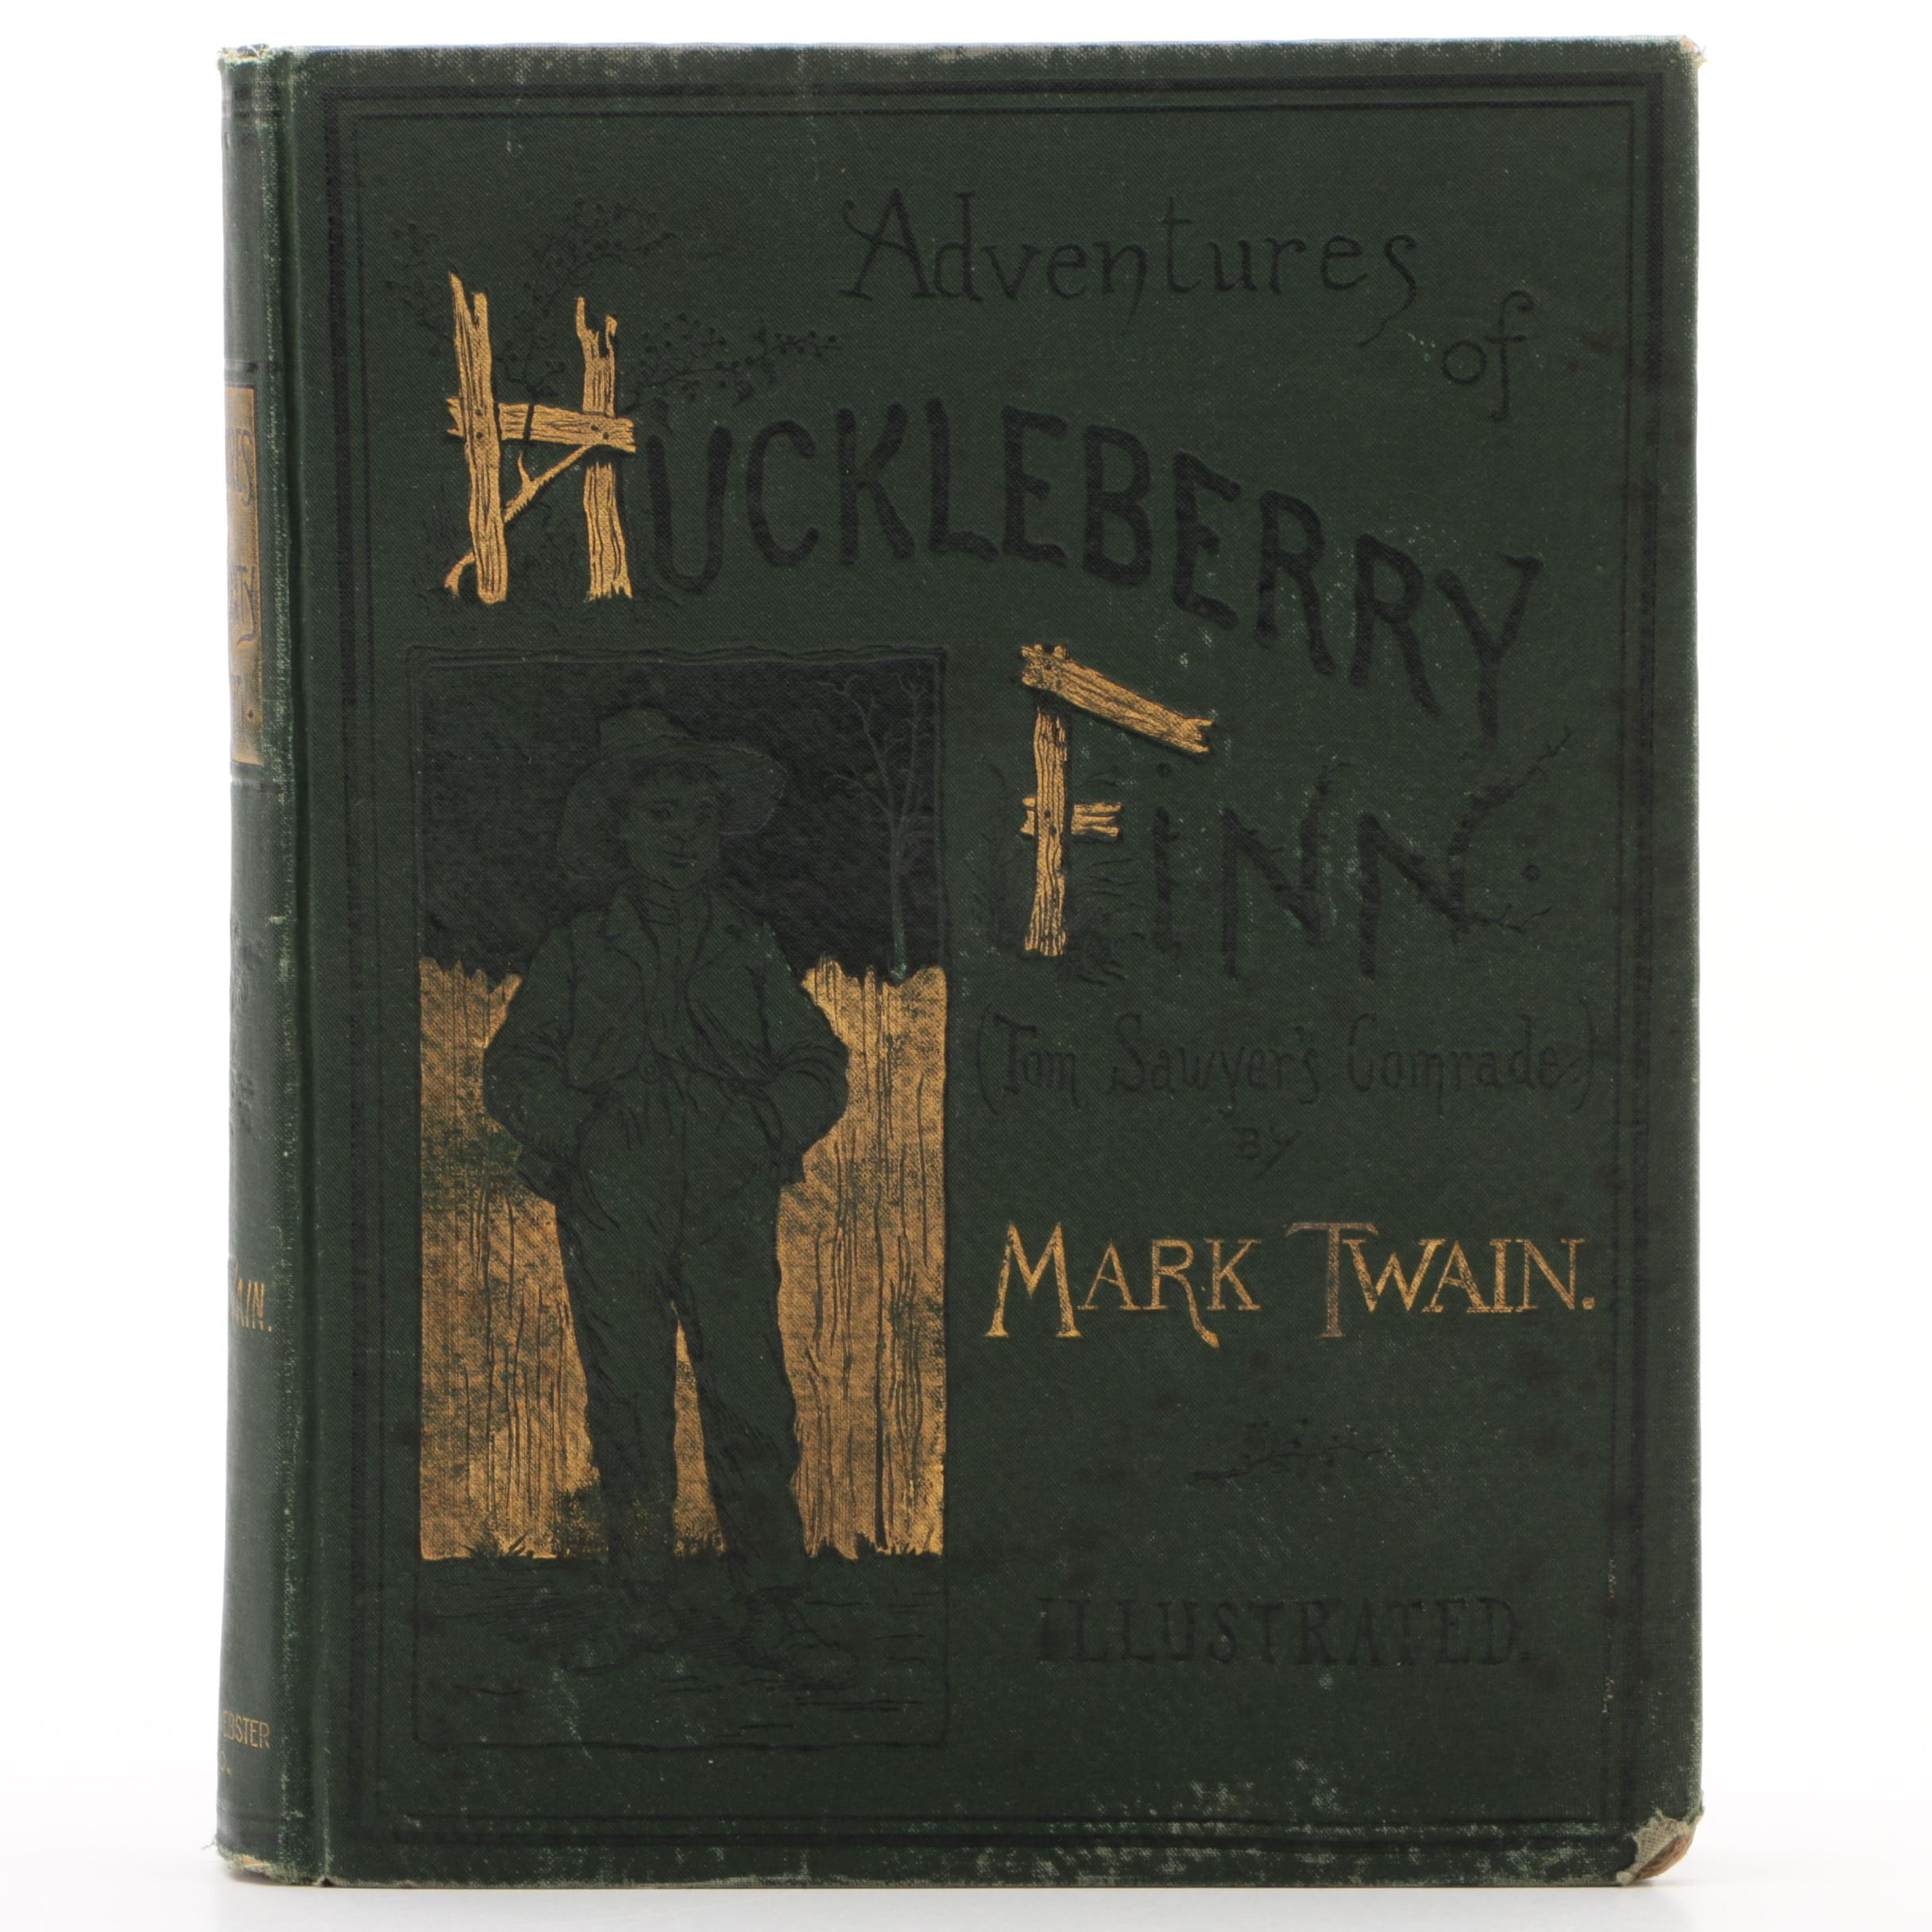 "First American Edition ""Adventures of Huckleberry Finn"" by Mark Twain, 1885"